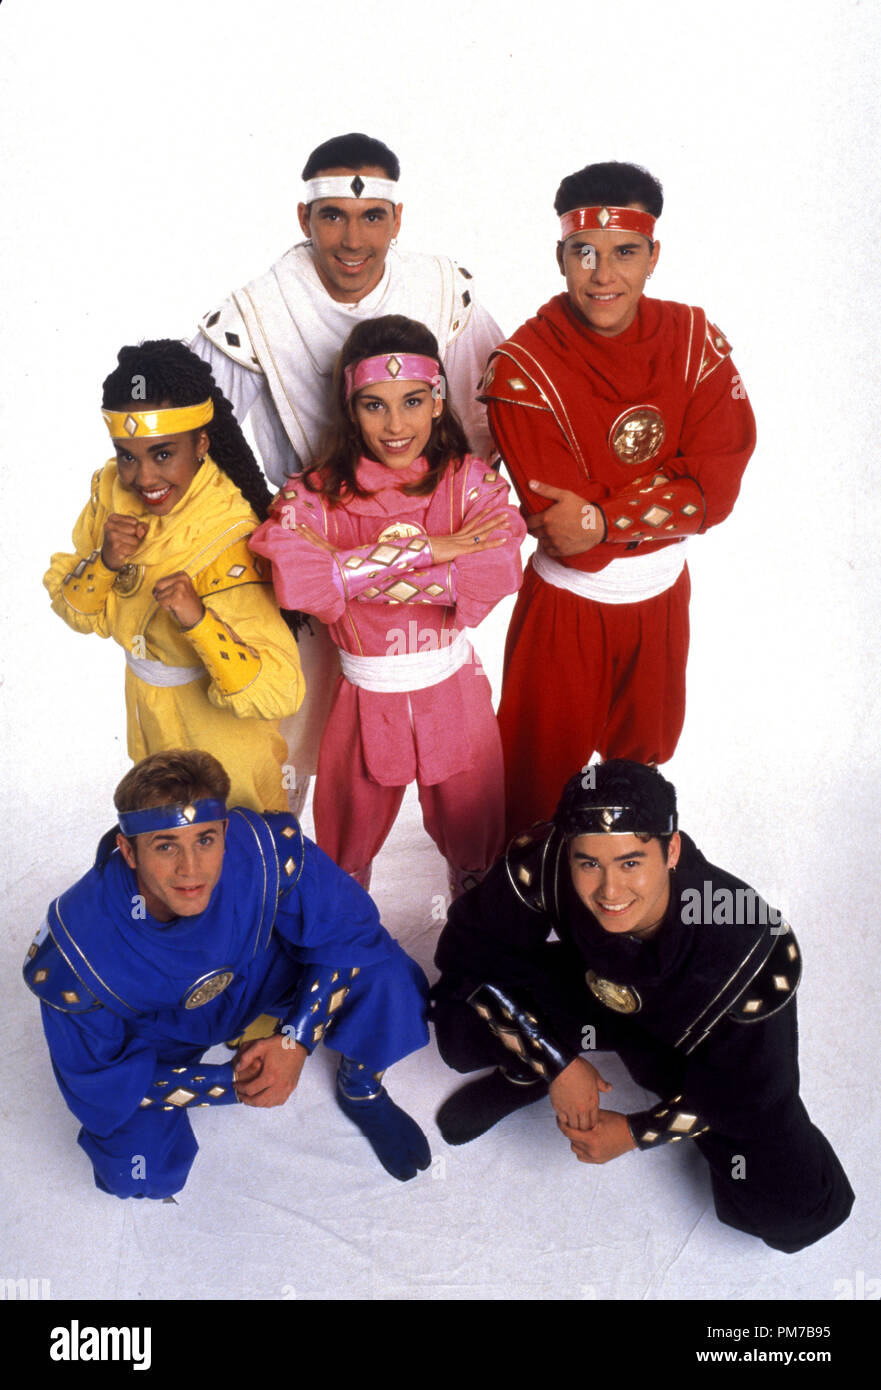 Film Still from 'Mighty Morphin Power Rangers: The Movie' David Yost, Karan Ashley, Jason David Frank, Amy Jo Johnson, Steve Cardenas, Johnny Yong Bosch © 1995 20th Century Fox   File Reference # 31043217THA  For Editorial Use Only - All Rights Reserved - Stock Image